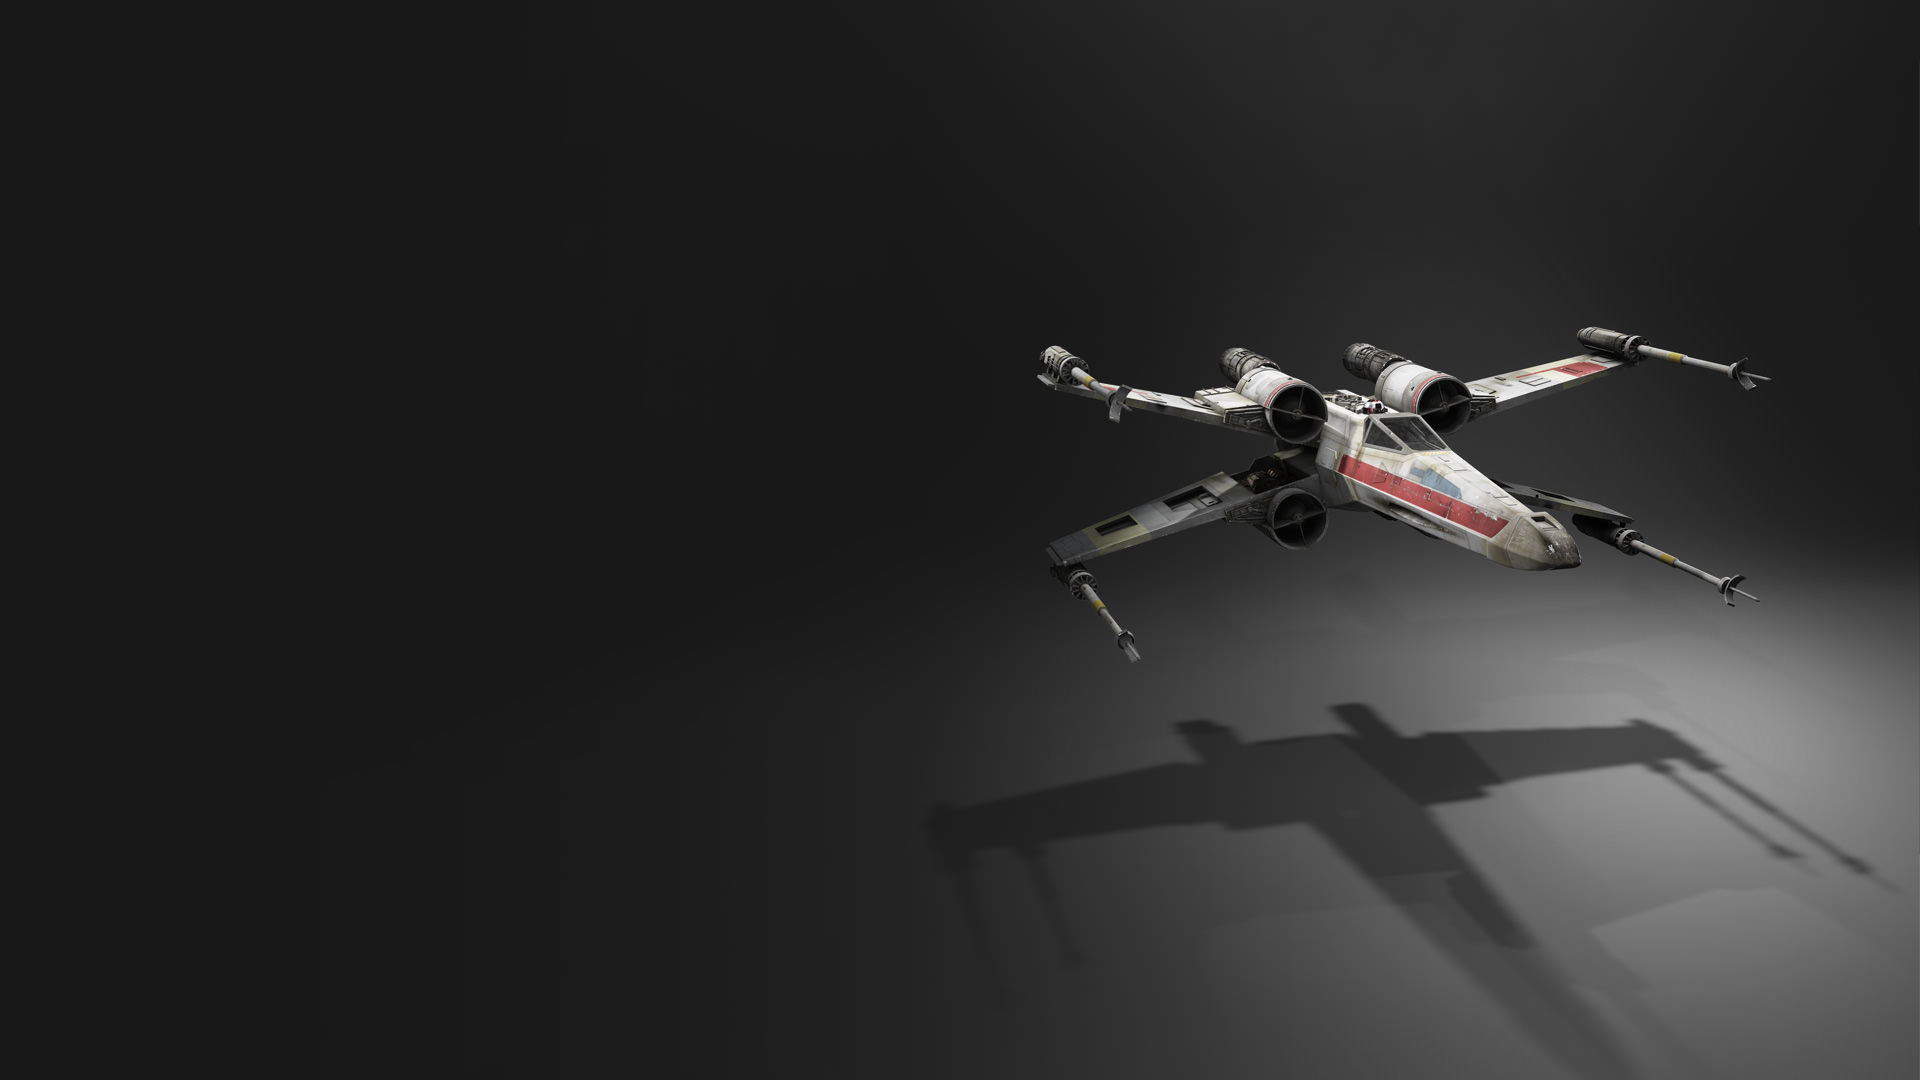 Star Wars X wing Minimalism Wallpapers HD Desktop and Mobile